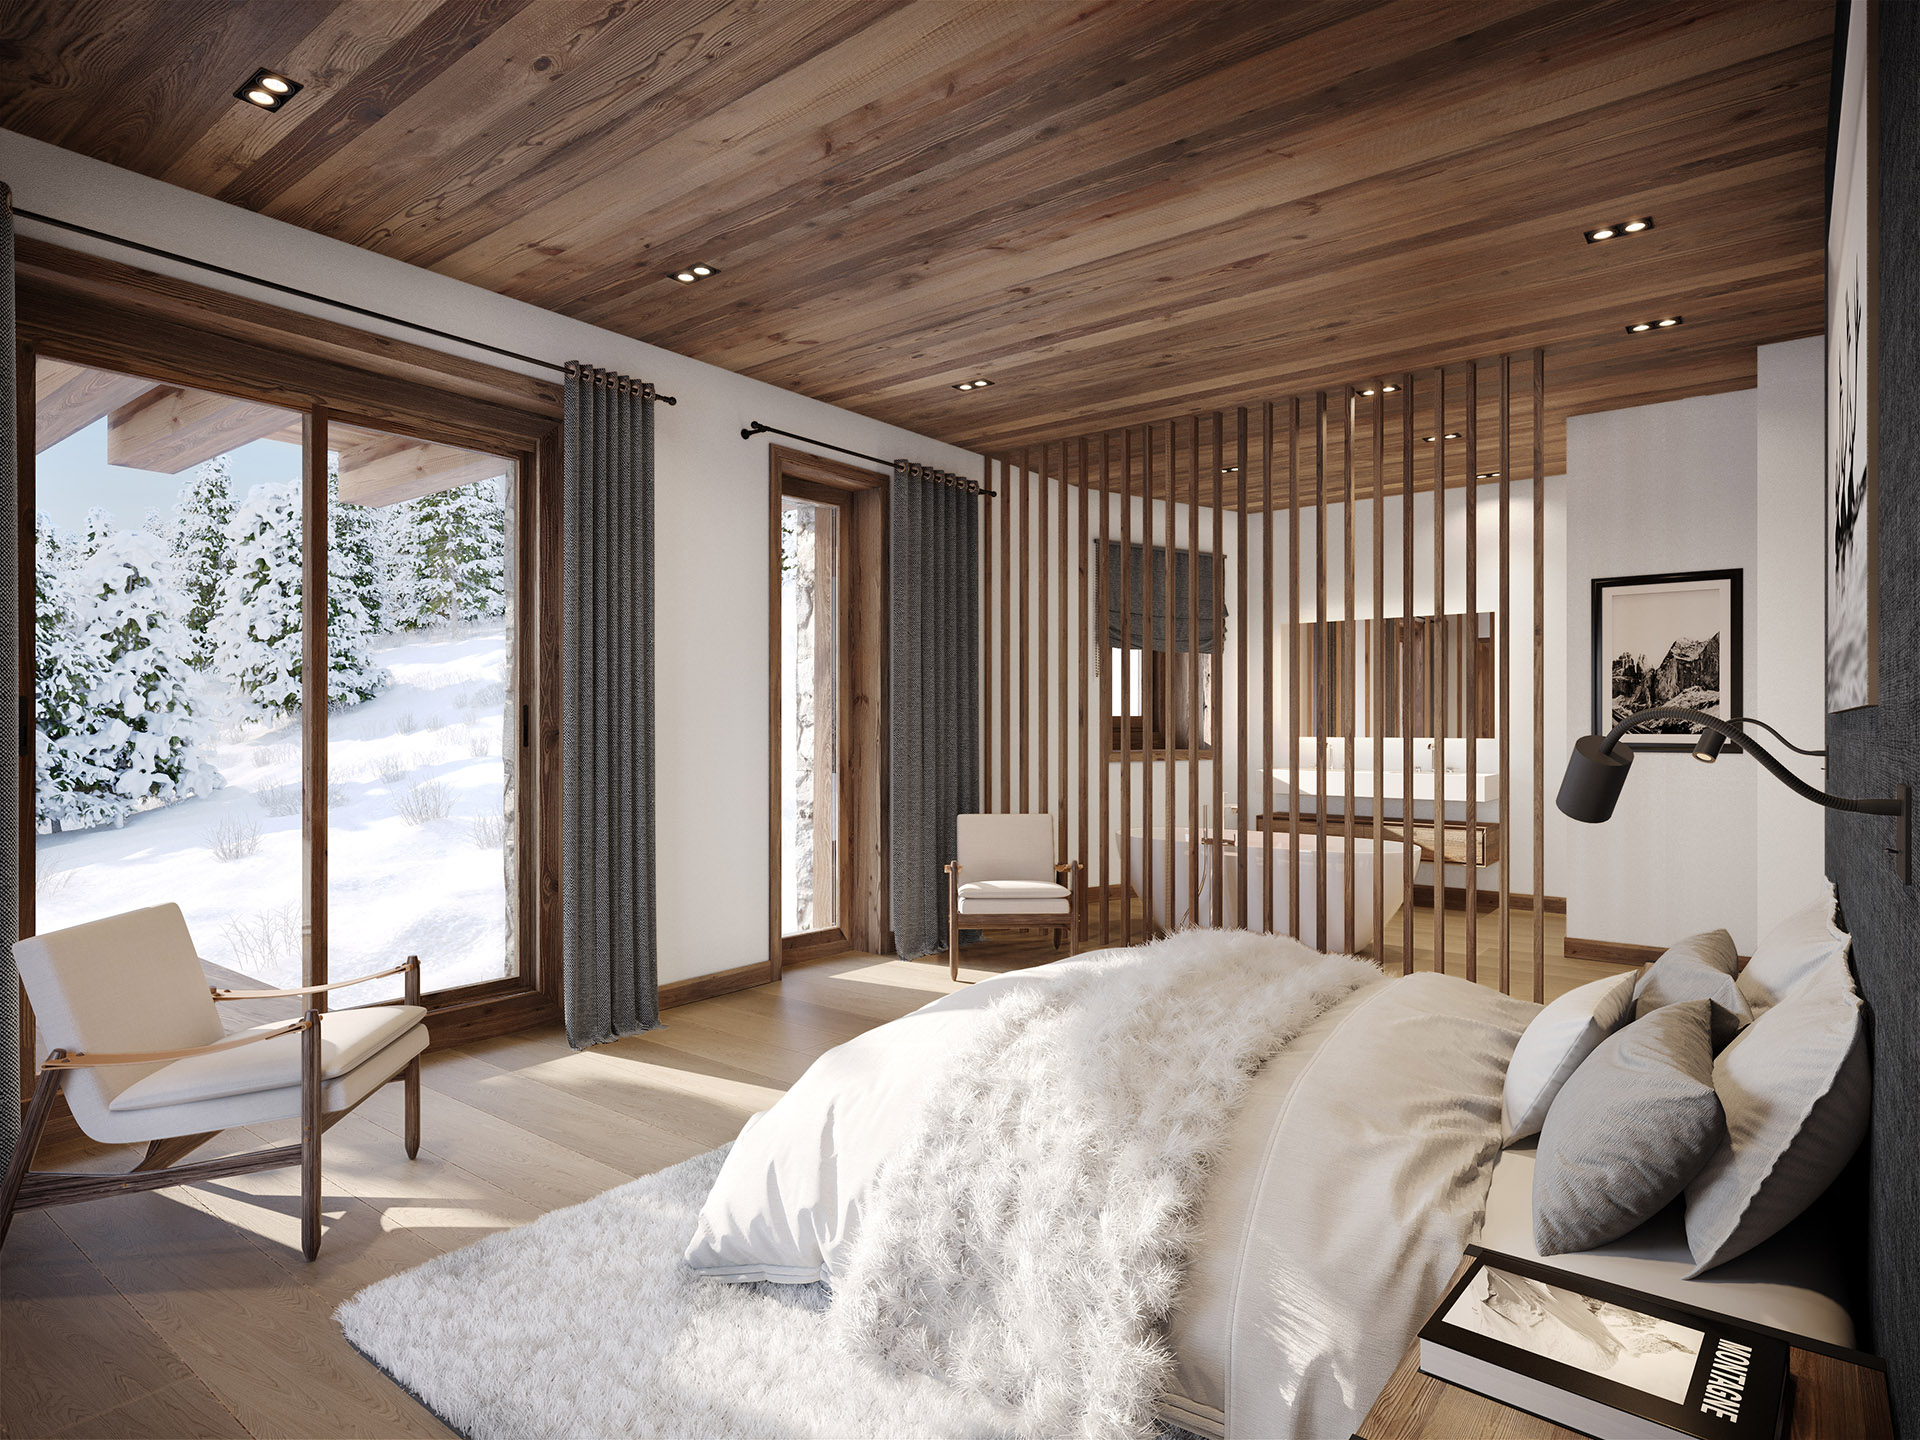 3D Archviz of a room in a mountain chalet